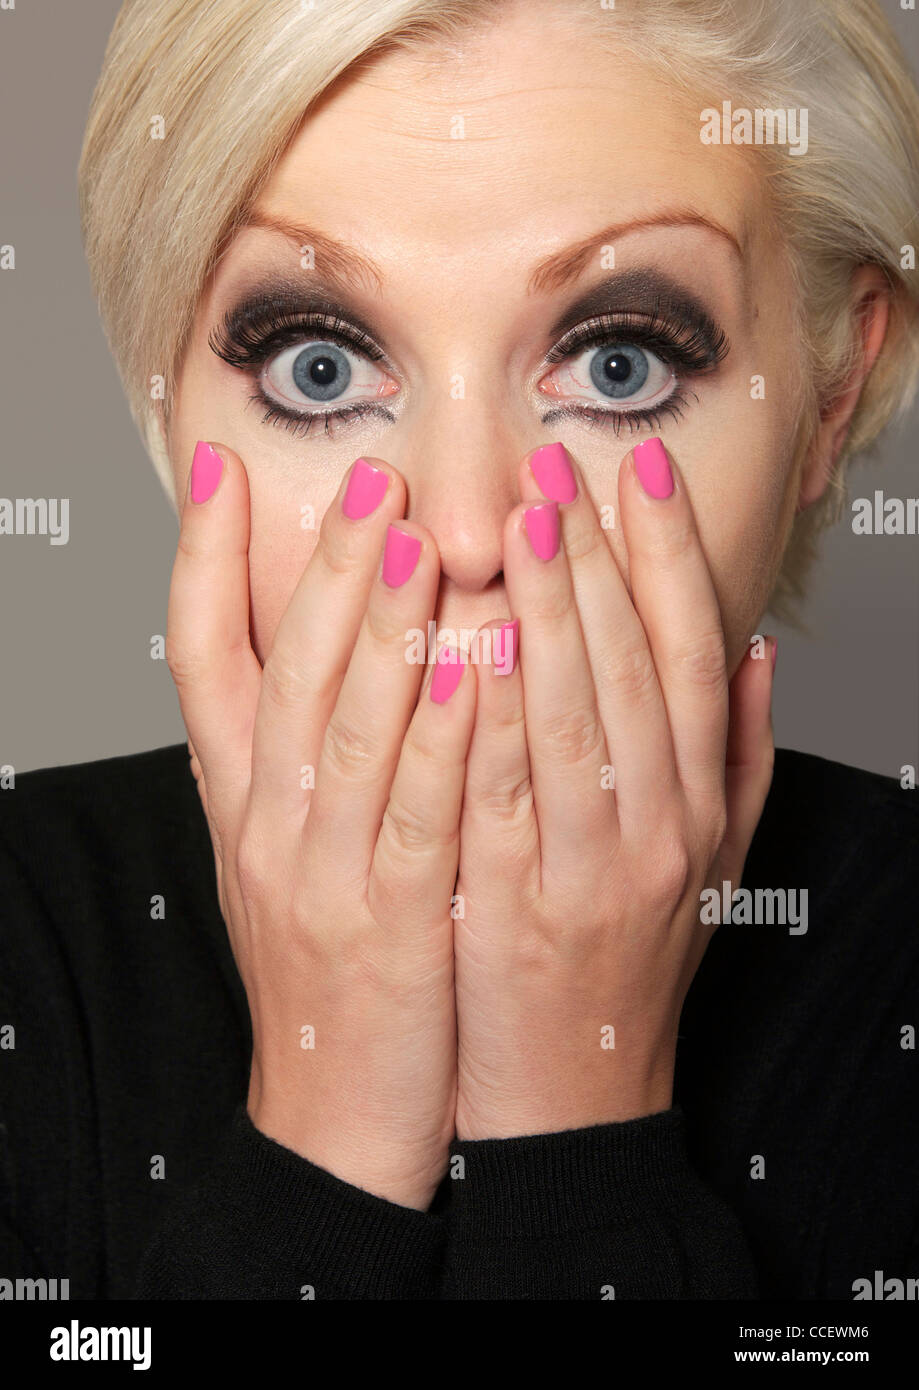 Shocked blonde-haired woman with hands on her face - Stock Image